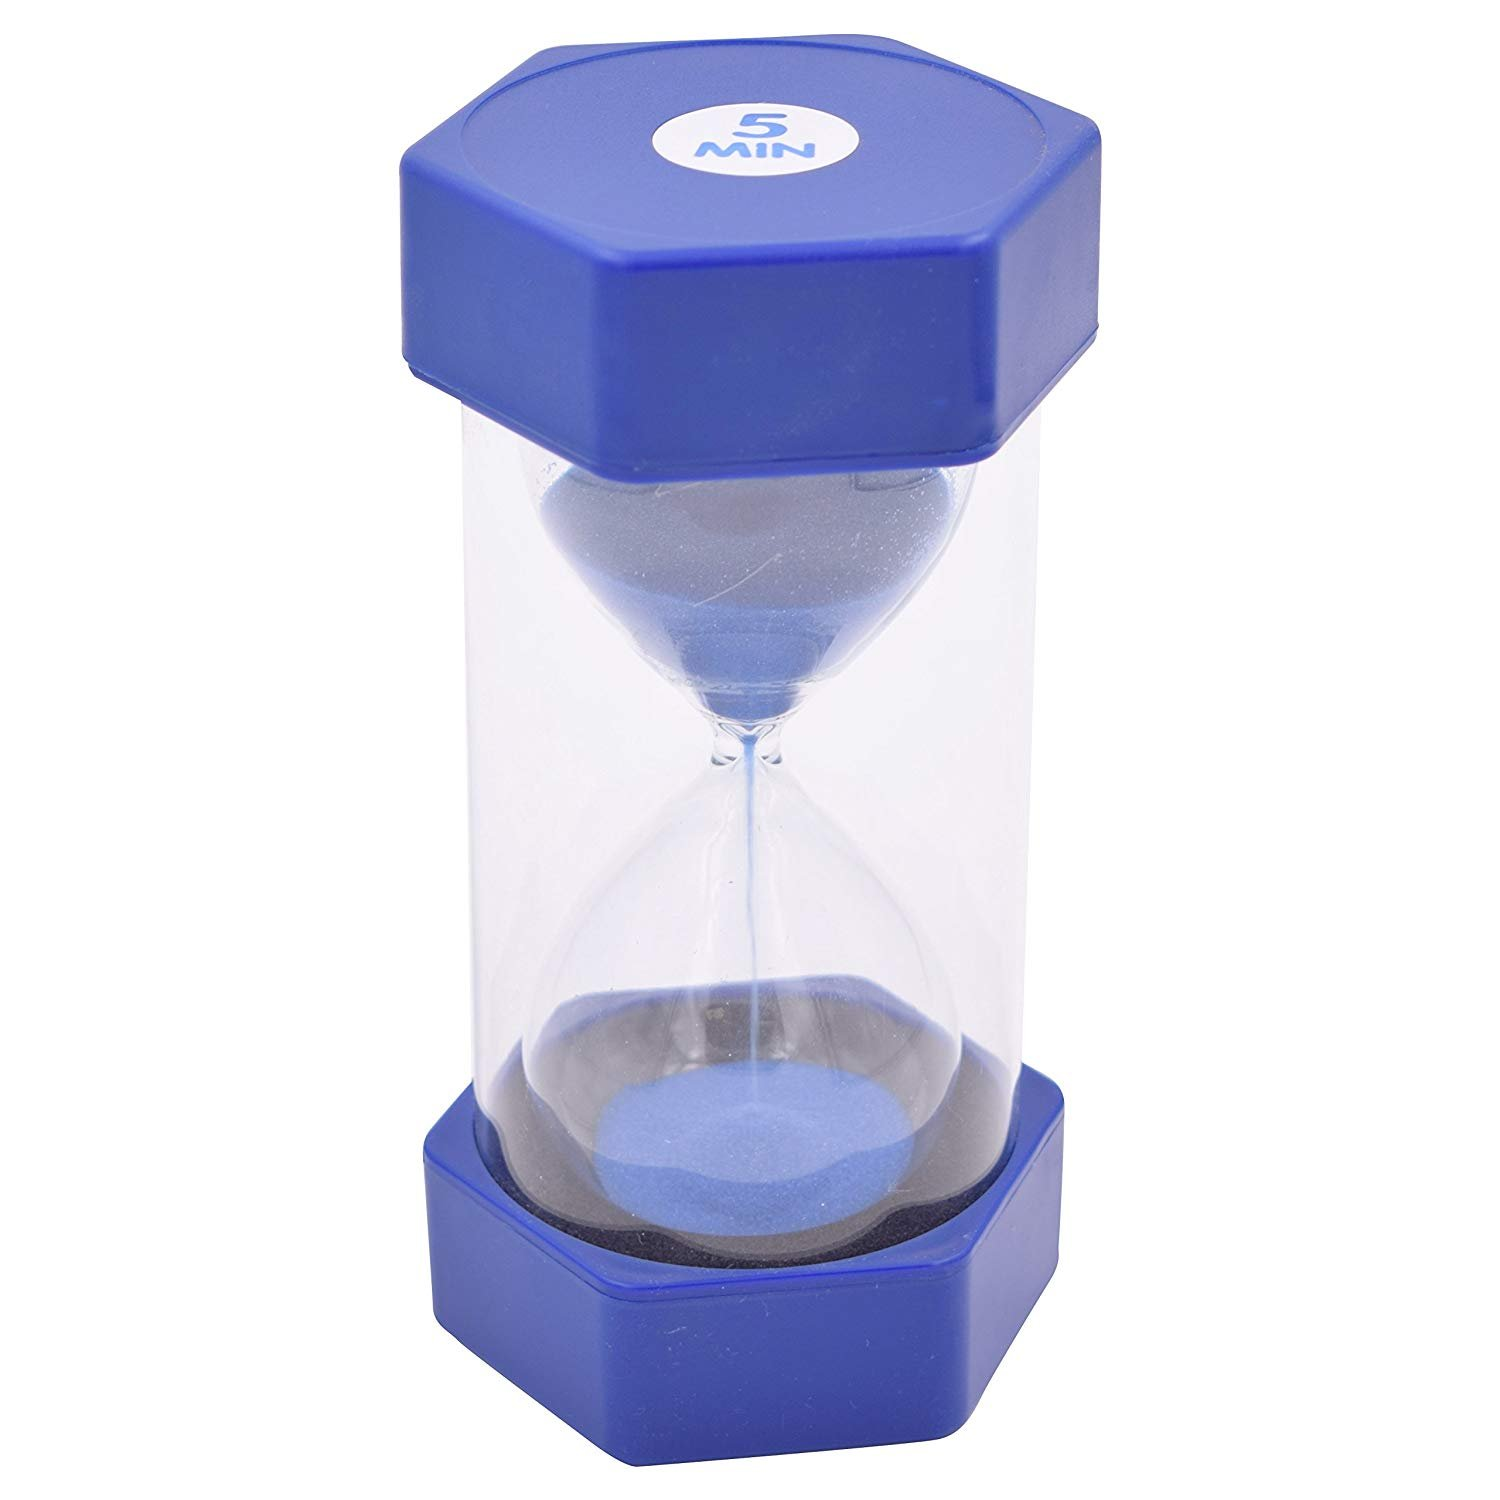 Sand Timer Hour Glass for Kids, Teachers, Therapists, Classroom, Office Desk, Kitchen, Decoration, Sensory Room. 5 Minute Hourglass timers. Blue. Large Size - by Playlearn USA